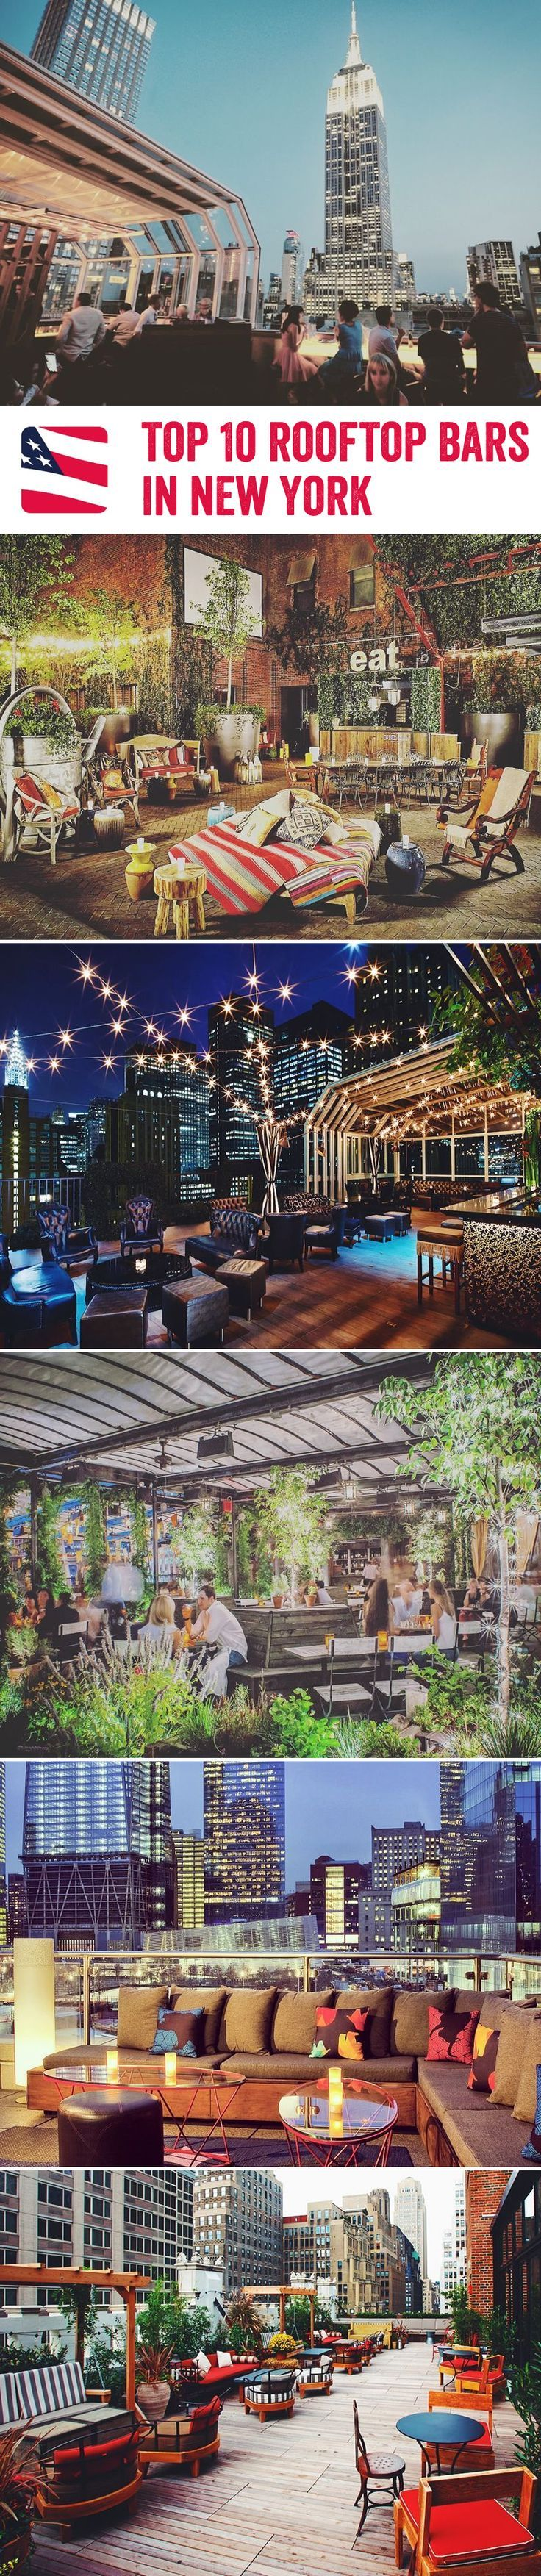 Tips for Finding a Great NYC Hotel We've collated our favourite open-air bars in New York City, from the unique, to the classy